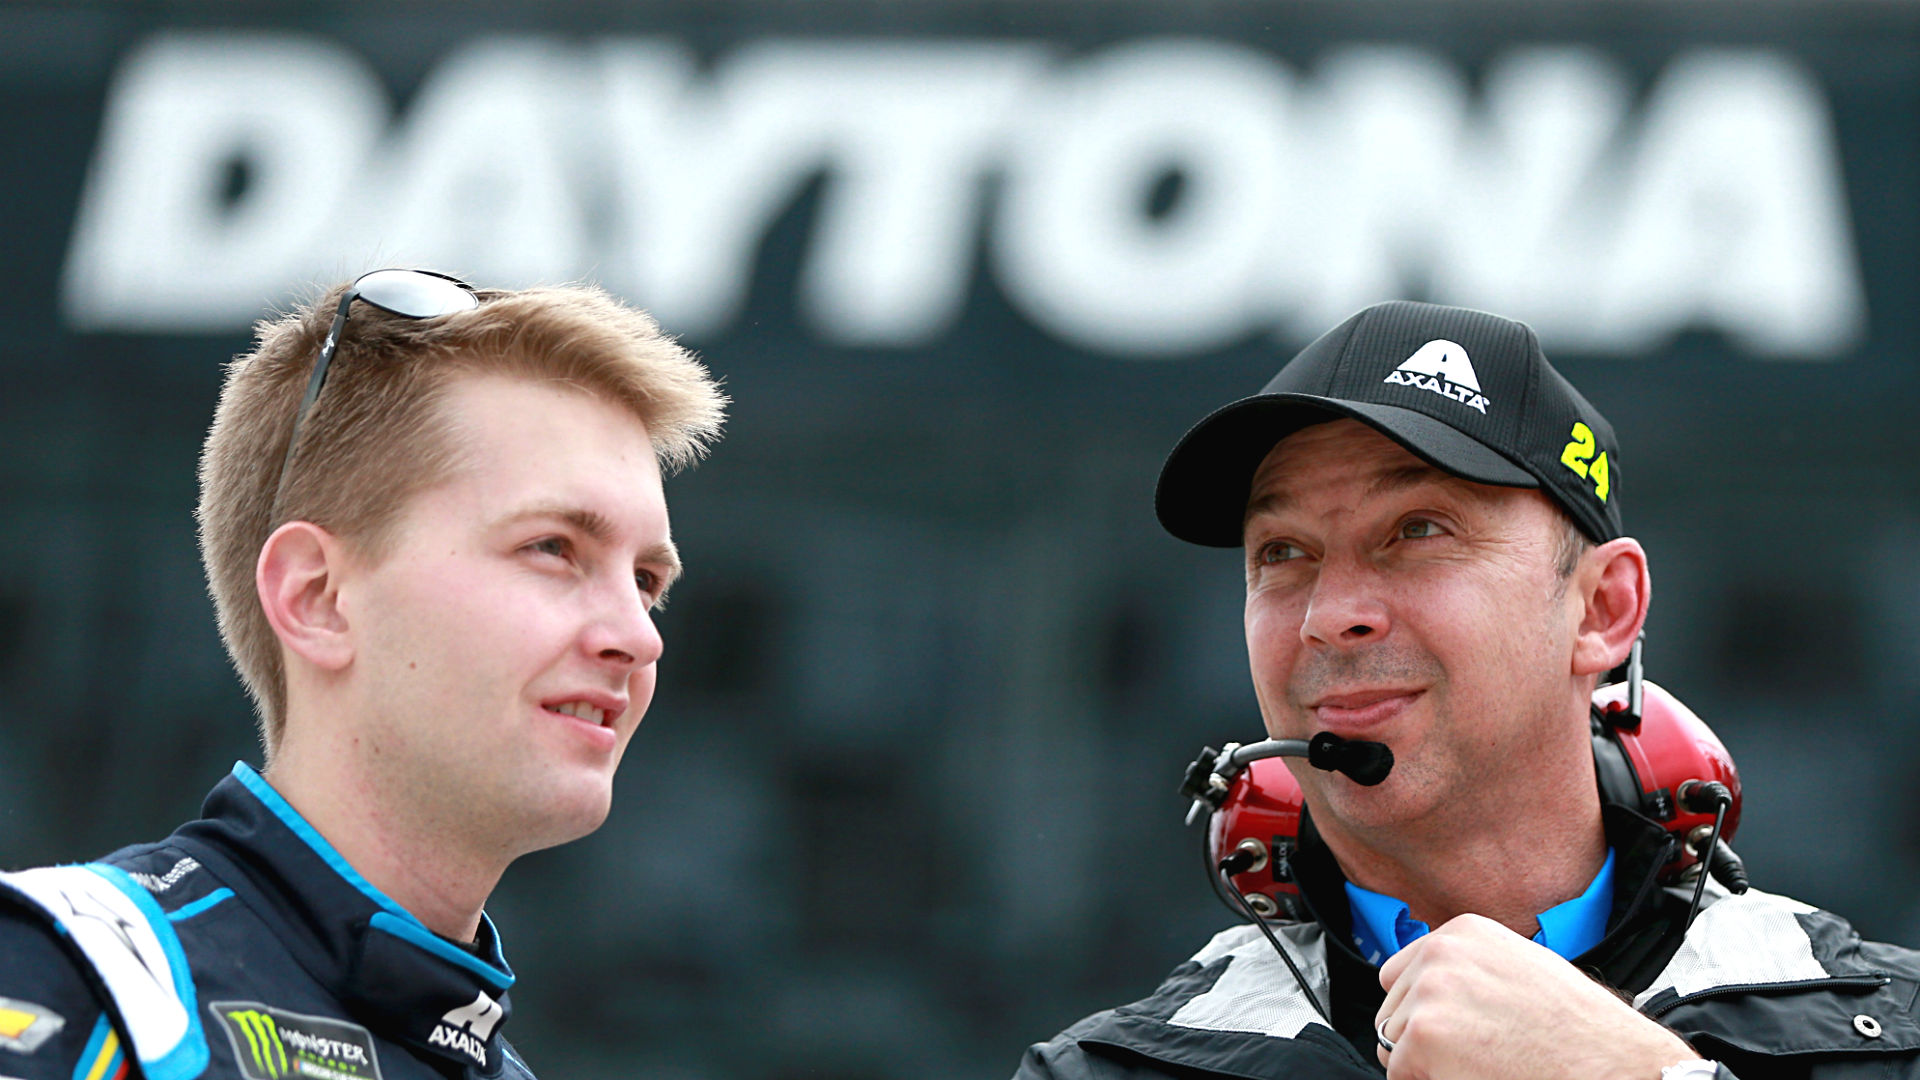 Daytona 500: William Byron's new pairing with Chad Knaus has come full circle